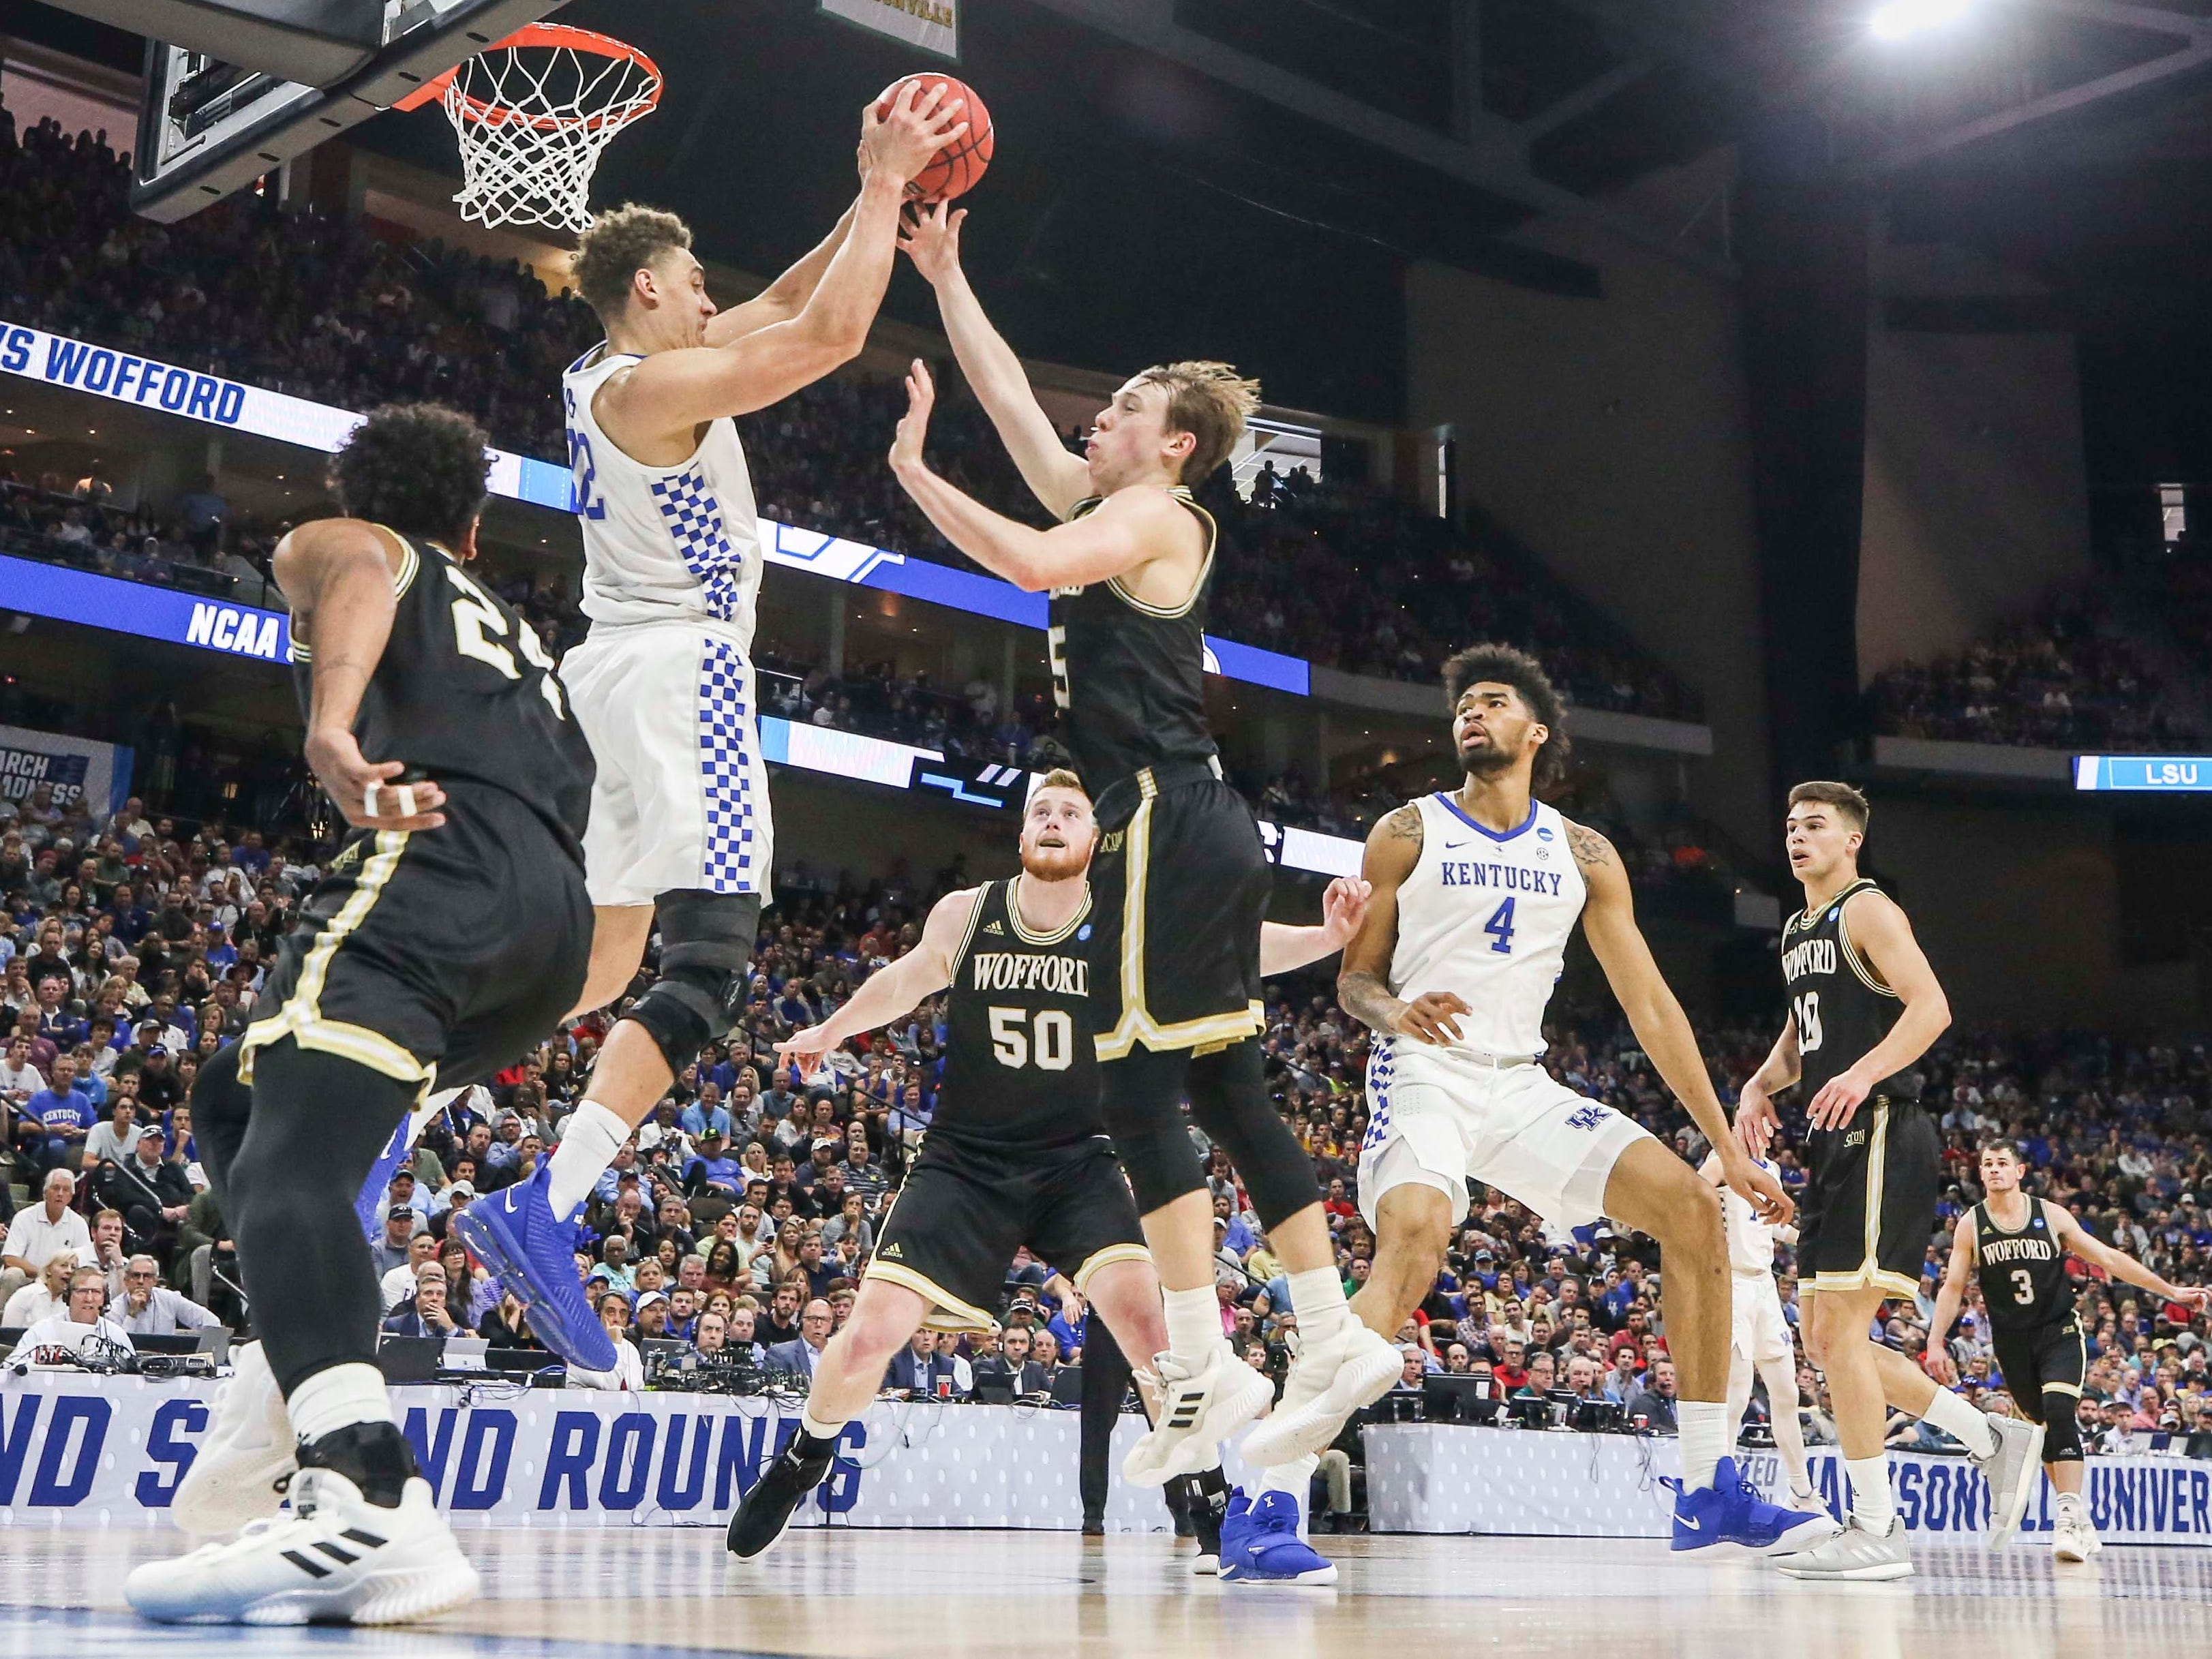 Kentucky's Reid Travis had 11 rebounds in the Wildcats' 62-56 win in the second round game of the 2019 NCAA tournament in Jacksonville, Fla. March 23, 2019